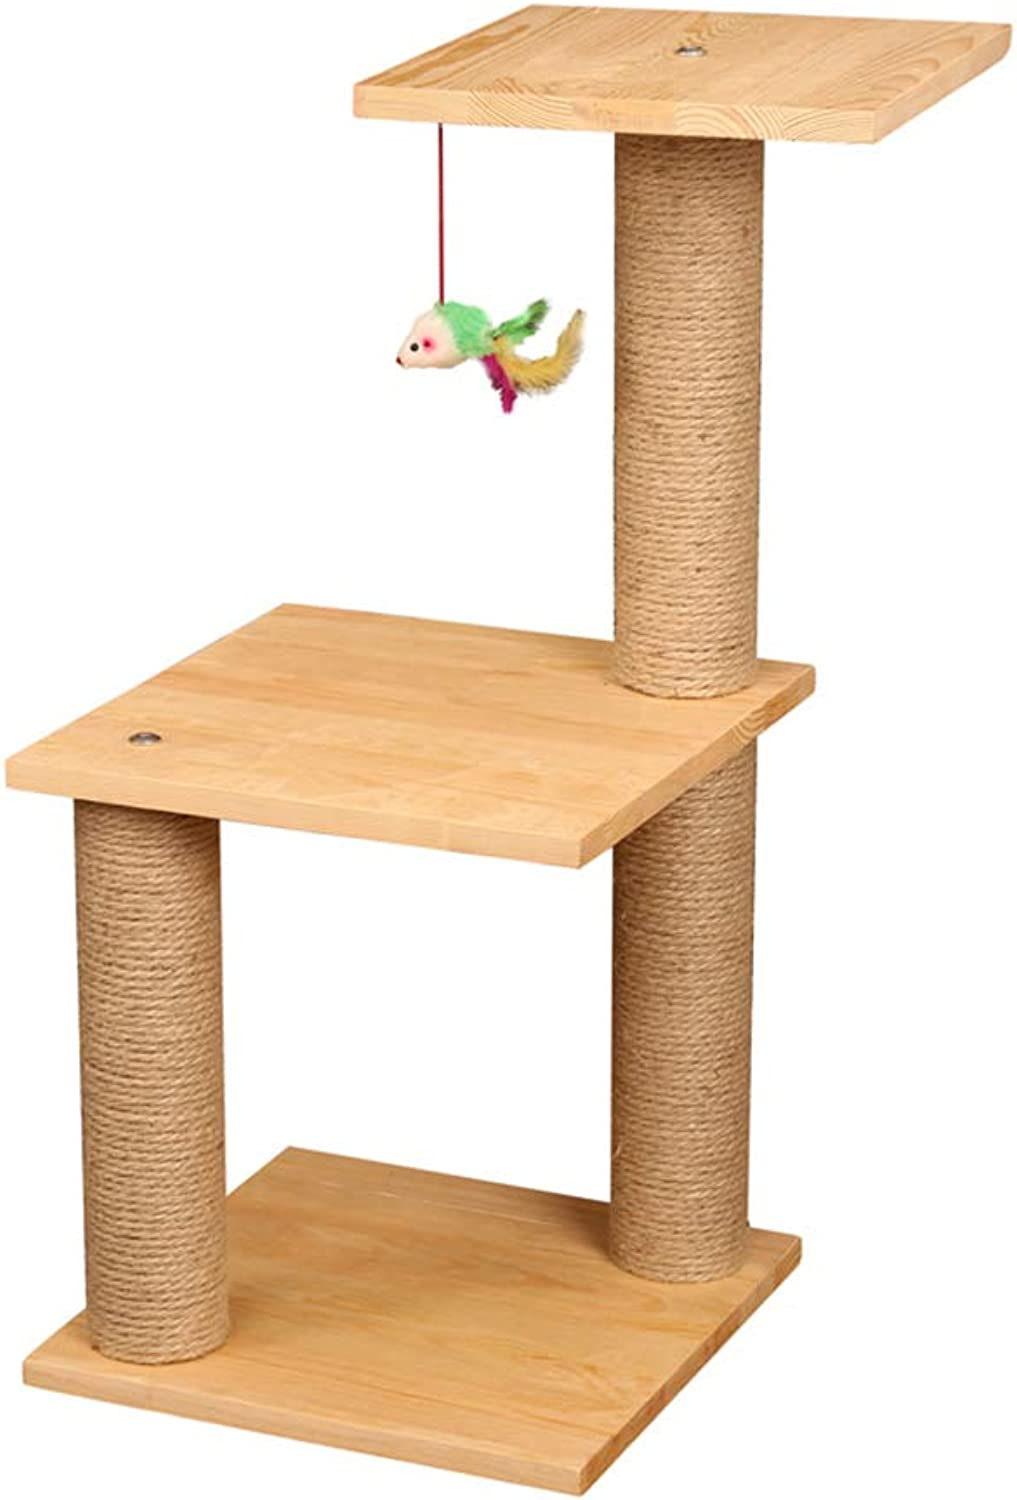 Ppmw Cat Scratch Board Pine Cat Climbing Frame Sisal Cat Litter Cat Tree Cat Toy